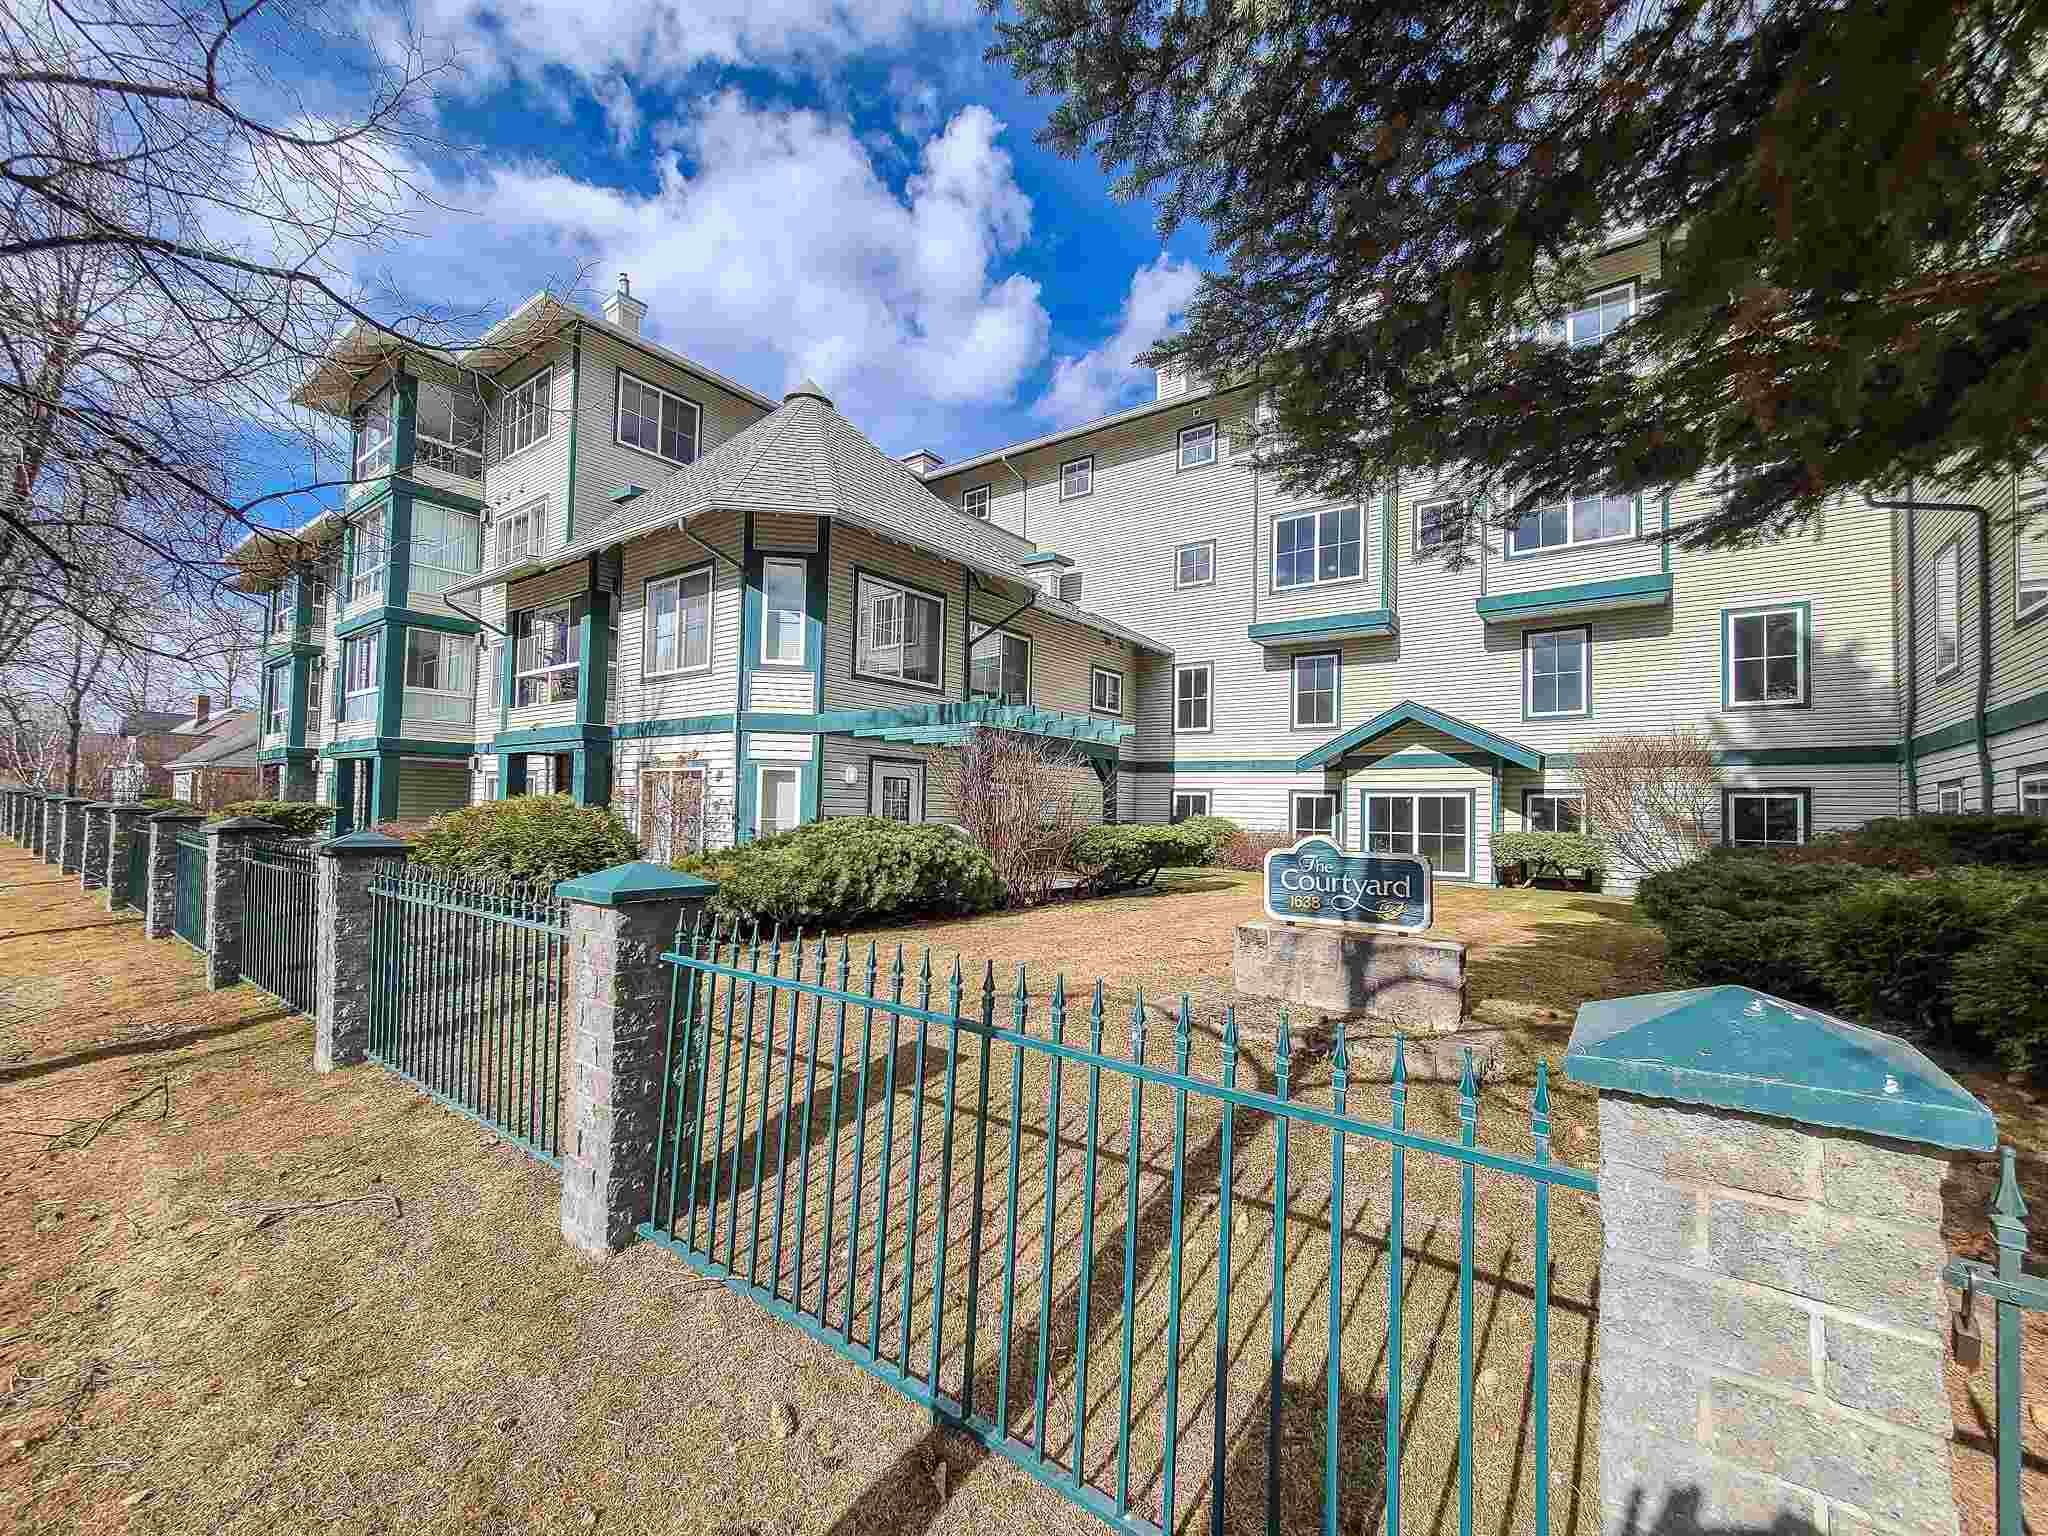 """Main Photo: 107 1638 6TH Avenue in Prince George: Downtown PG Condo for sale in """"COURT YARD ON 6TH"""" (PG City Central (Zone 72))  : MLS®# R2597416"""